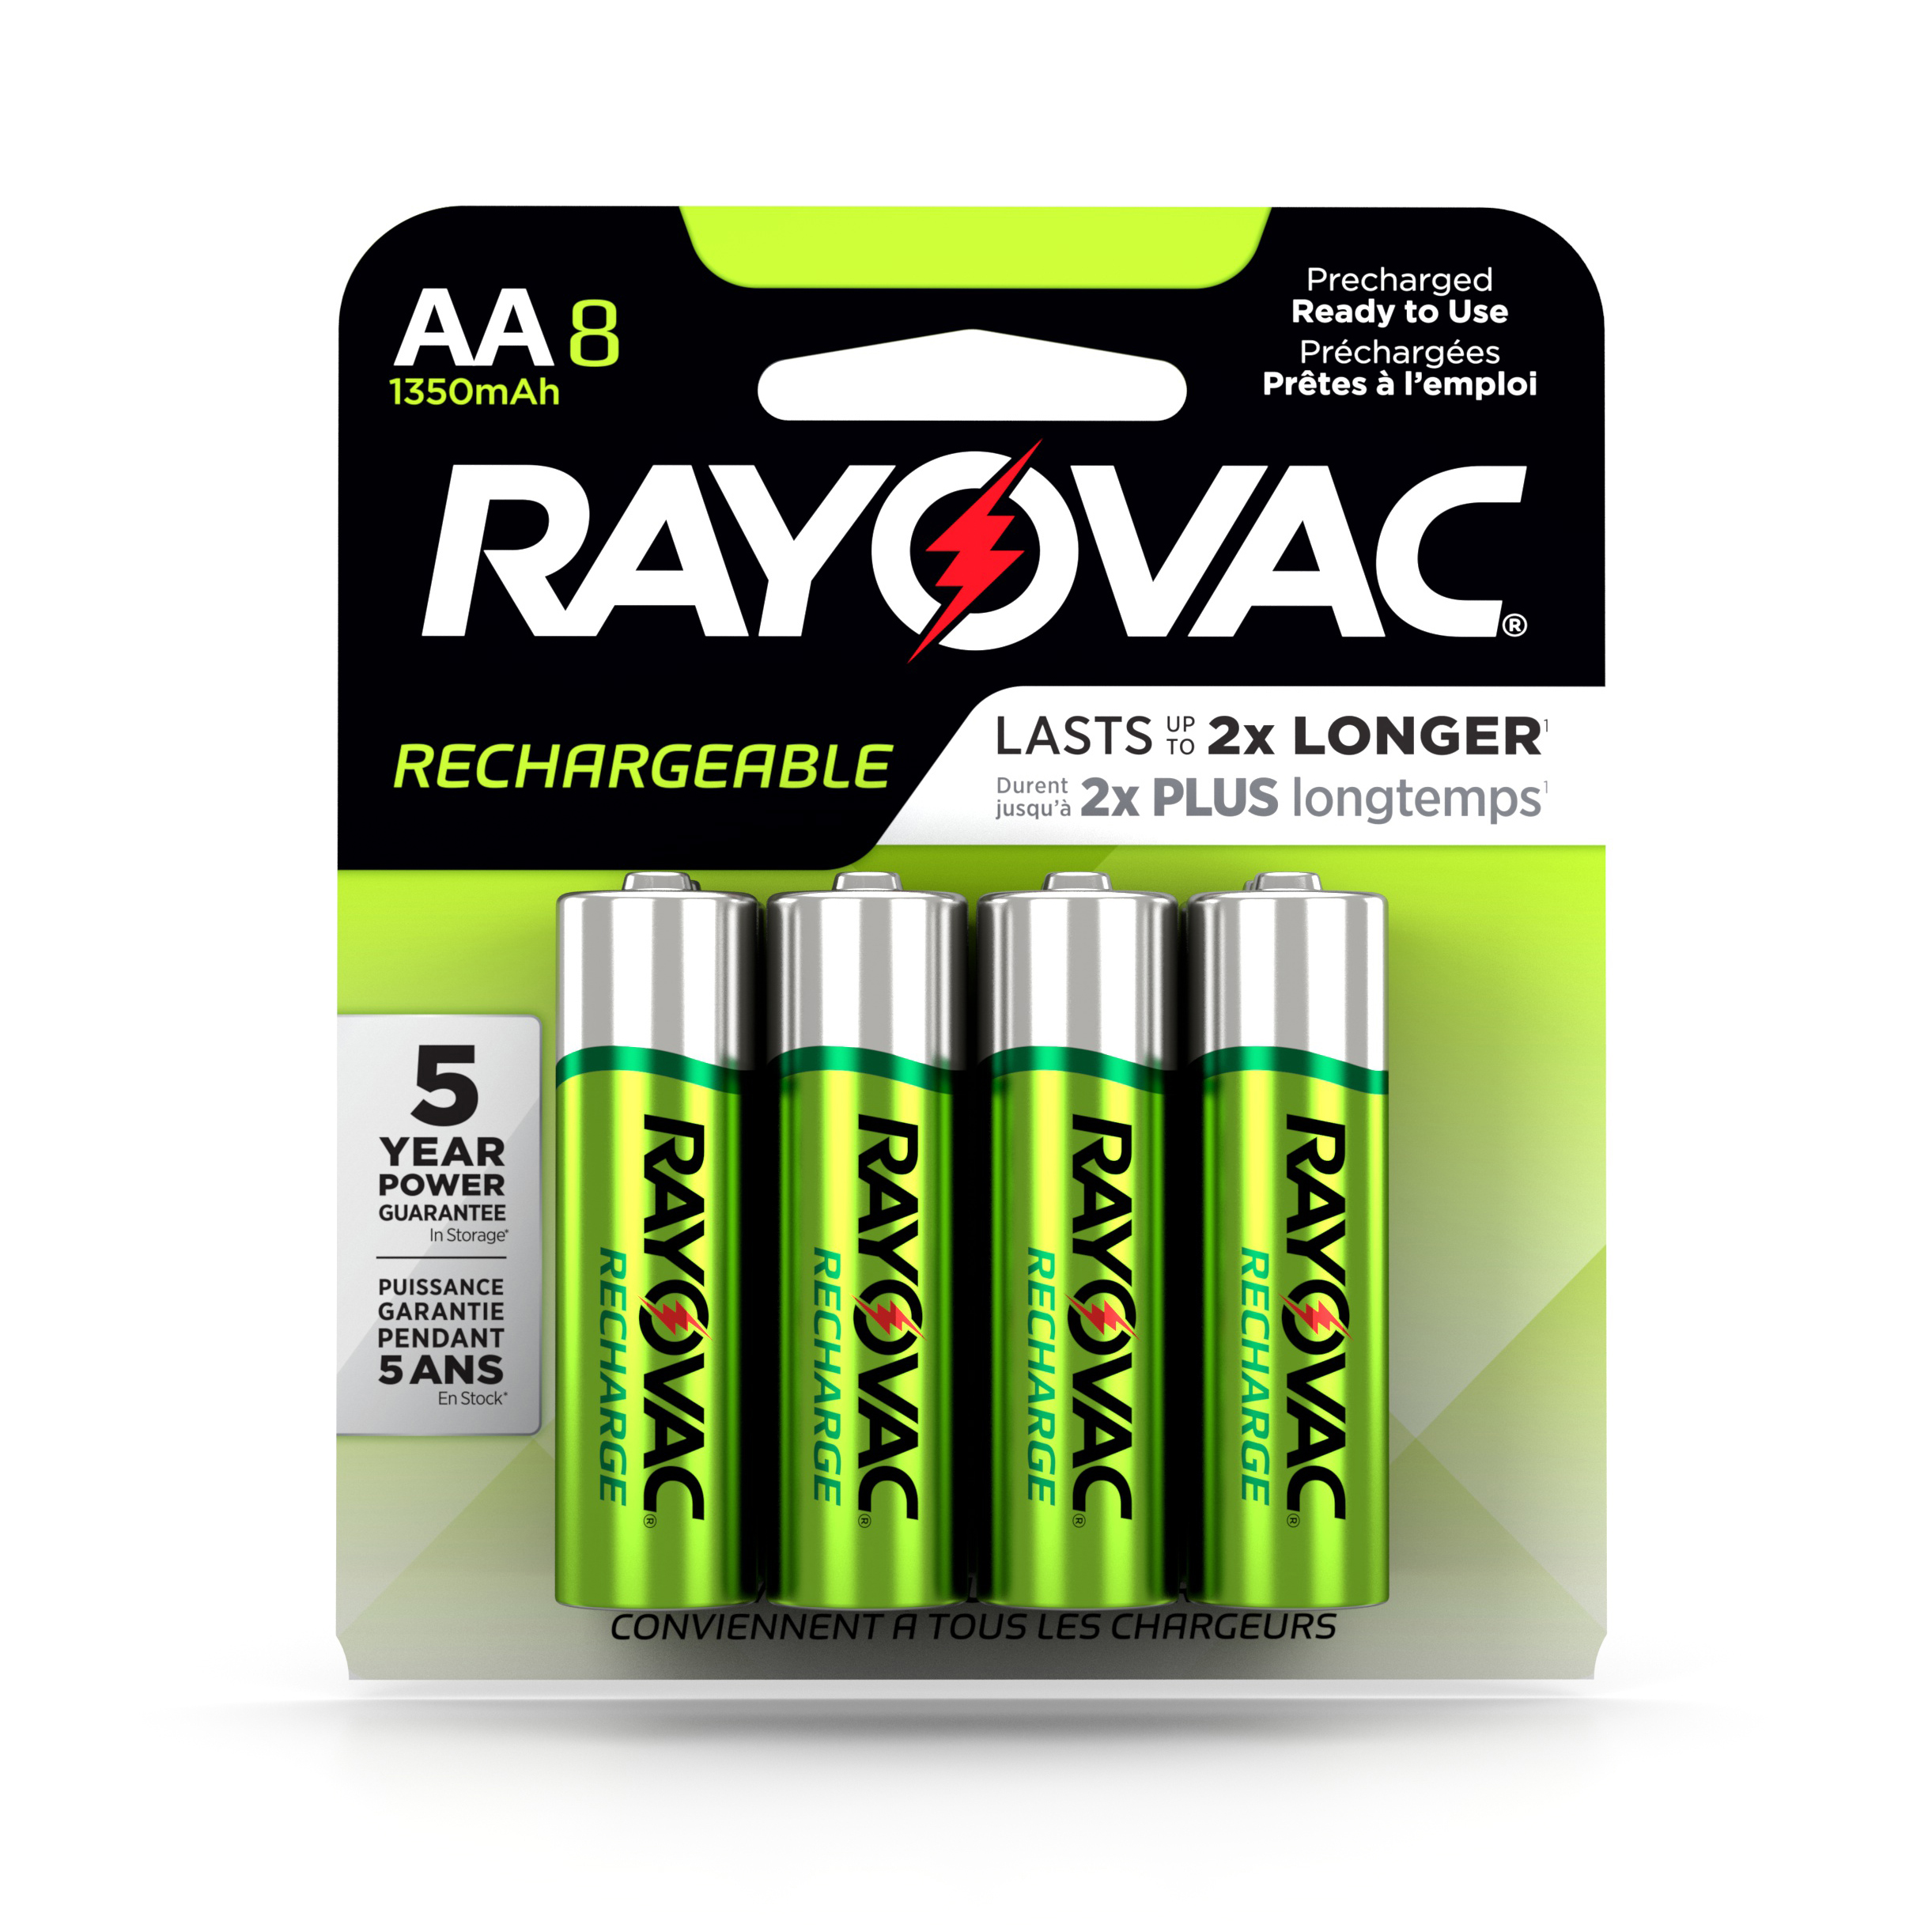 Rayovac Recharge NiMh, AA Batteries, 8 Count